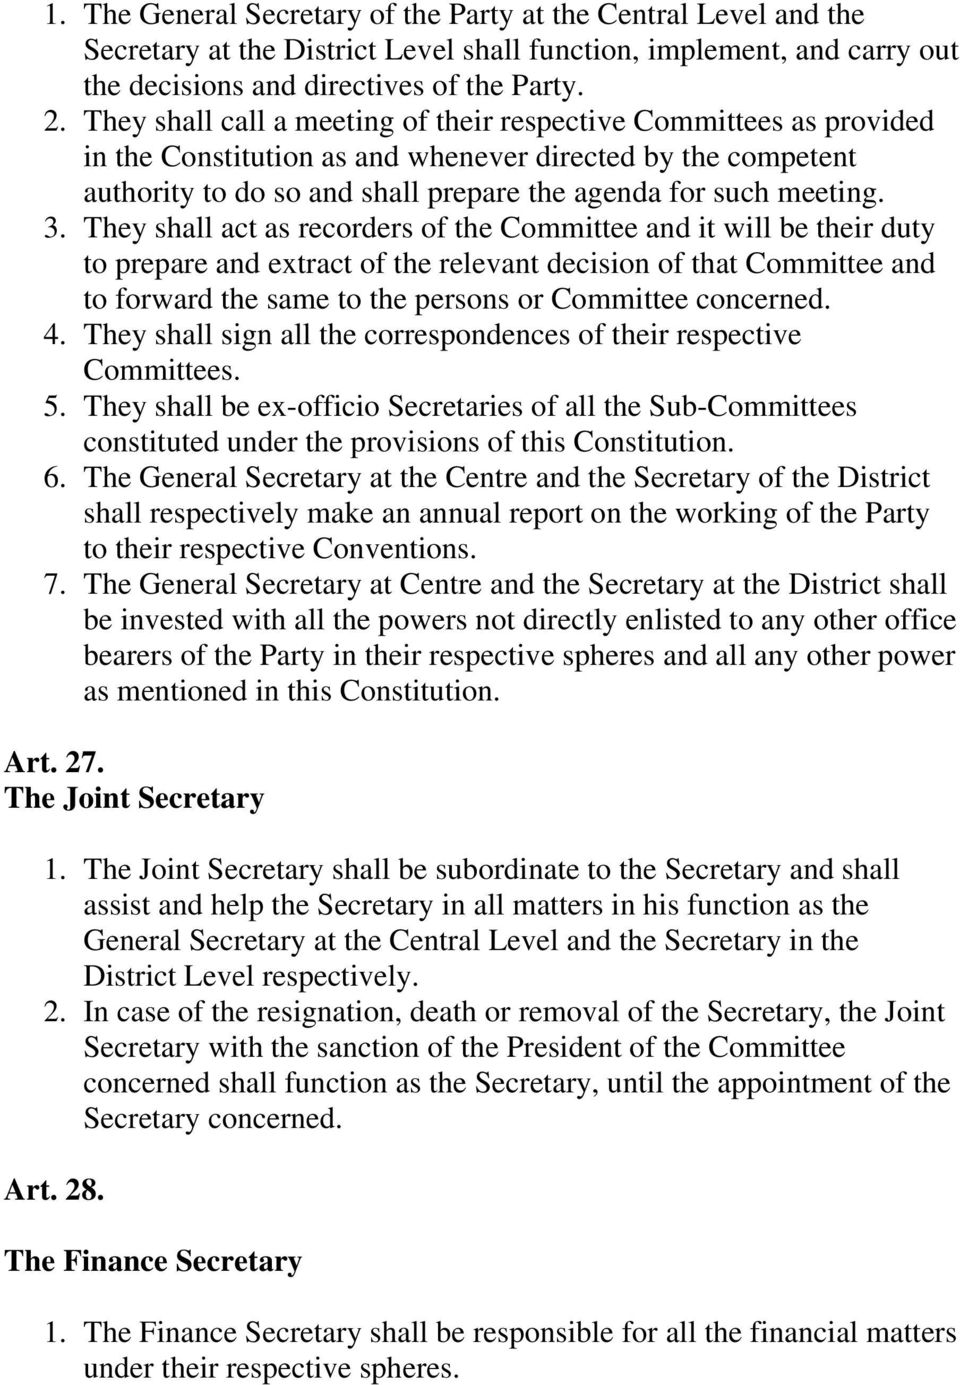 They shall act as recorders of the Committee and it will be their duty to prepare and extract of the relevant decision of that Committee and to forward the same to the persons or Committee concerned.